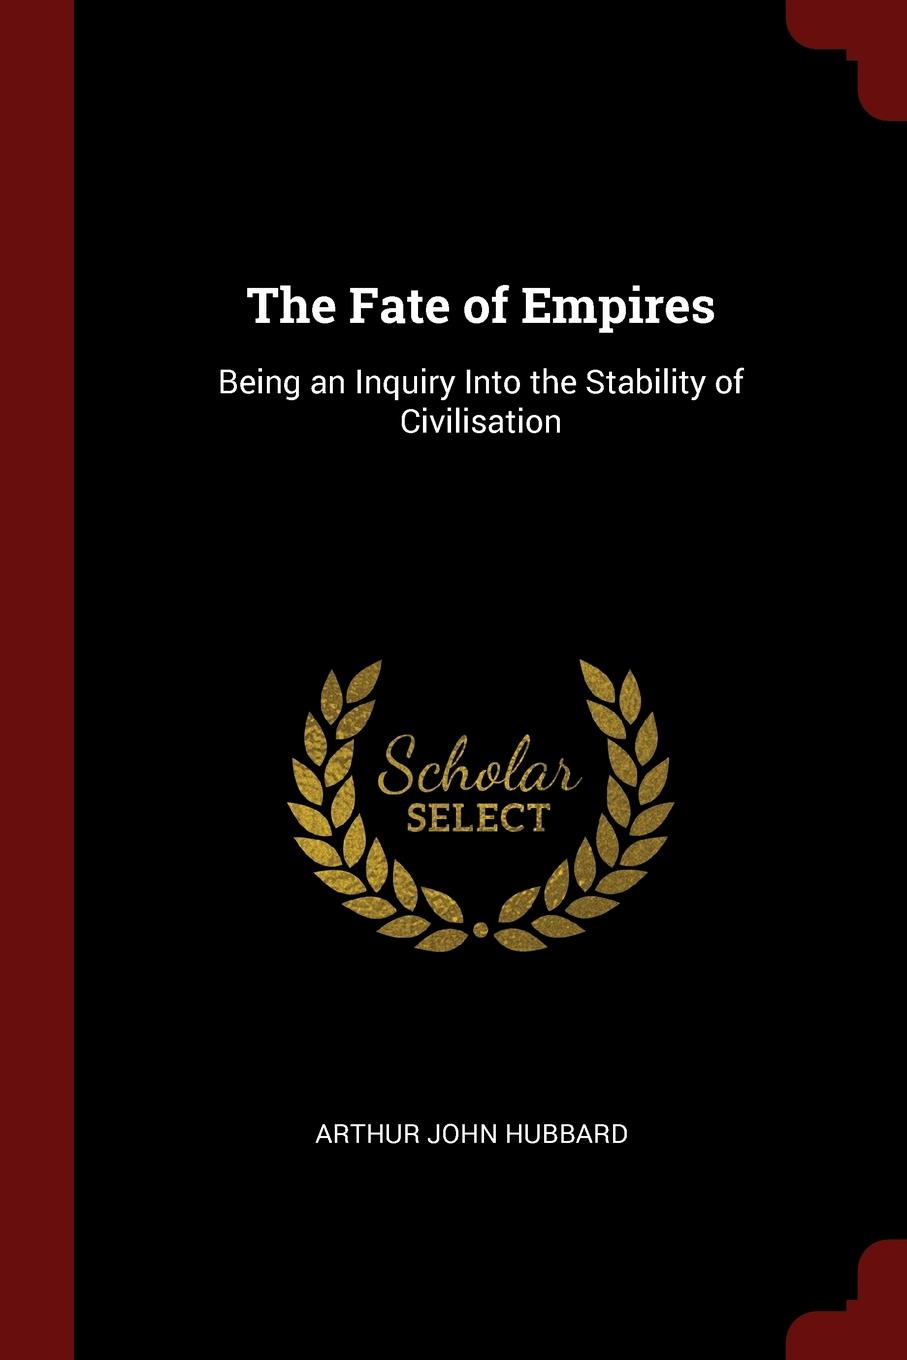 The Fate of Empires. Being an Inquiry Into the Stability of Civilisation